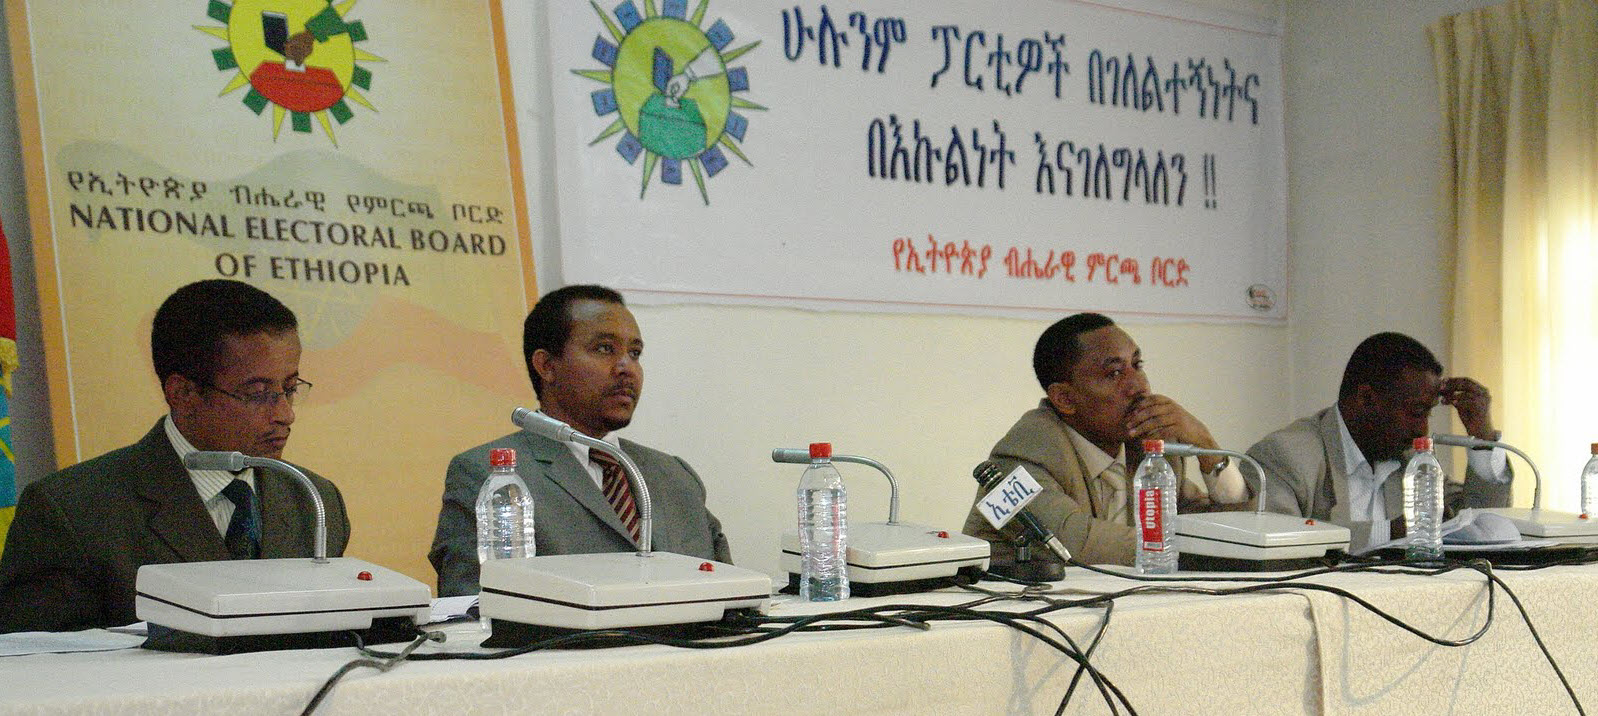 Ethiopian Election Board - We serve all Equally